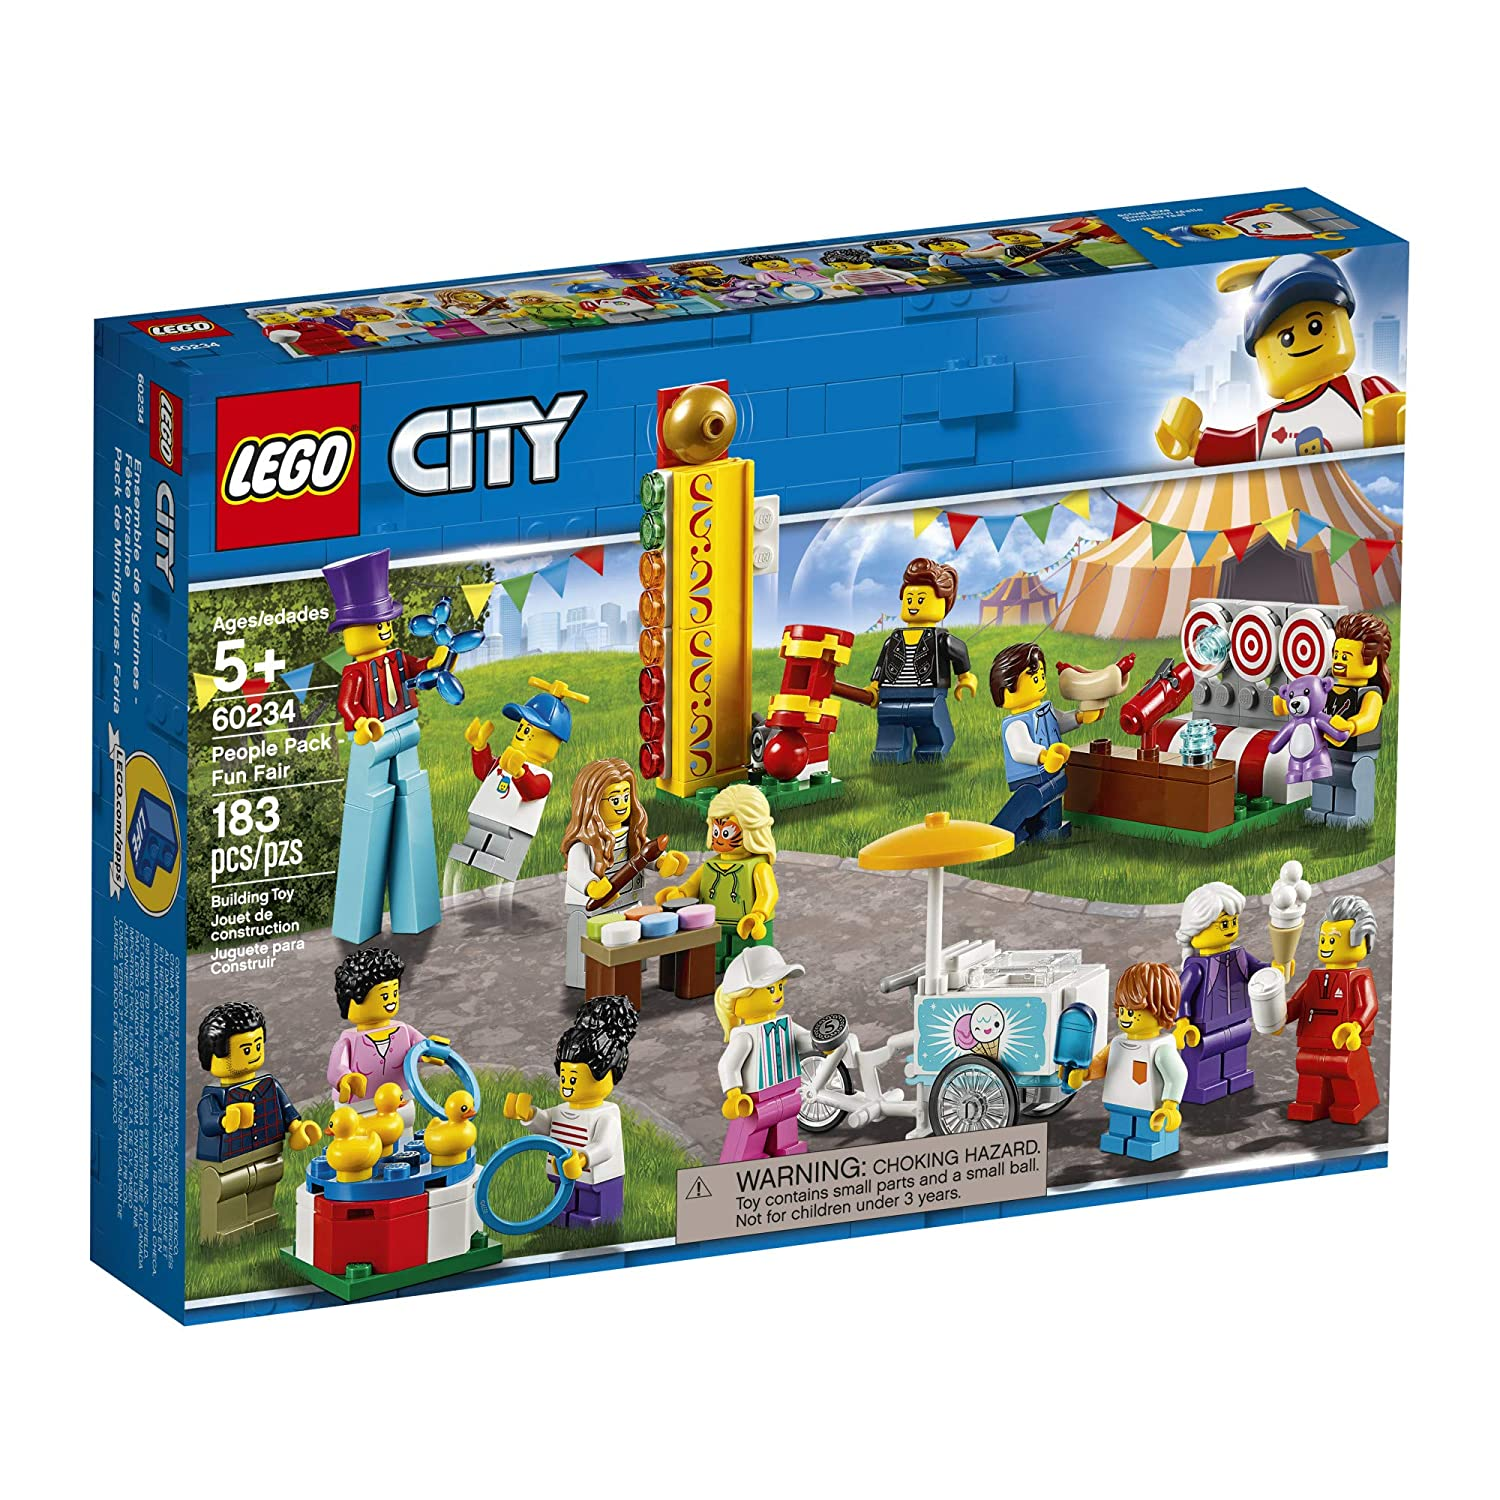 Amazon.com: LEGO City People Pack – Fun Fair 60234 Kit de ...